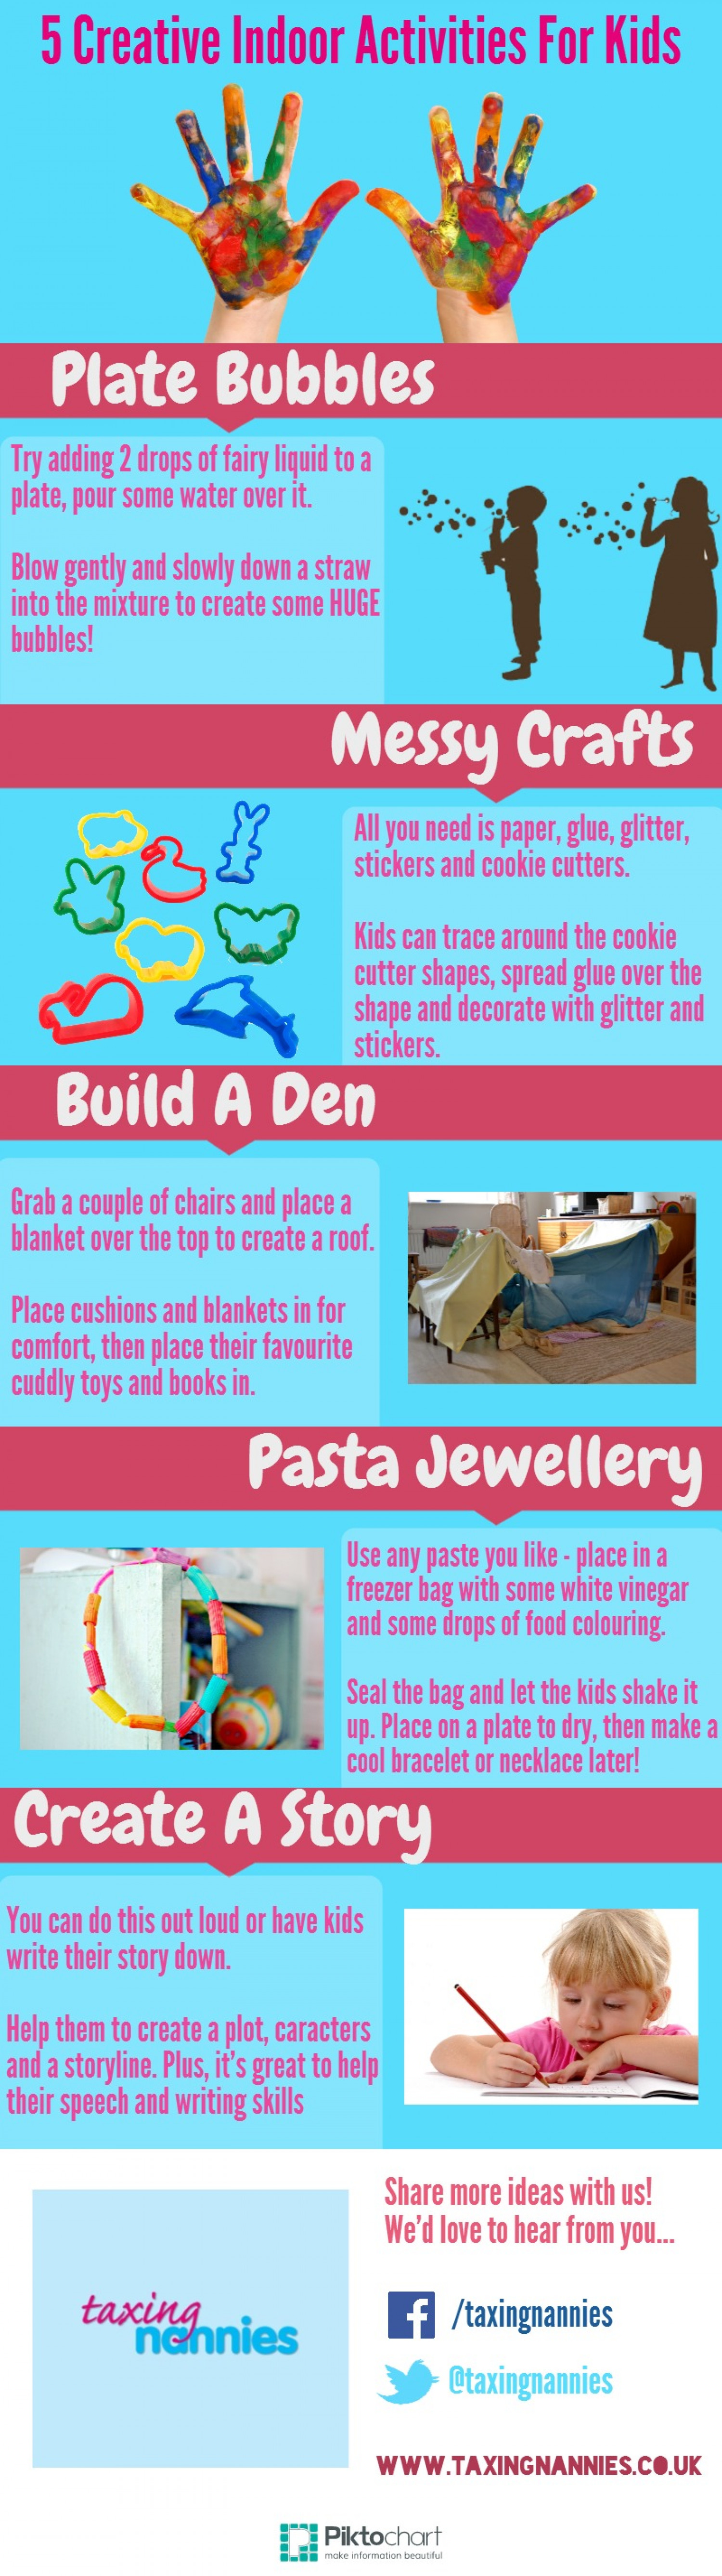 5 Creative Indoor Activities For Kids Visual Ly